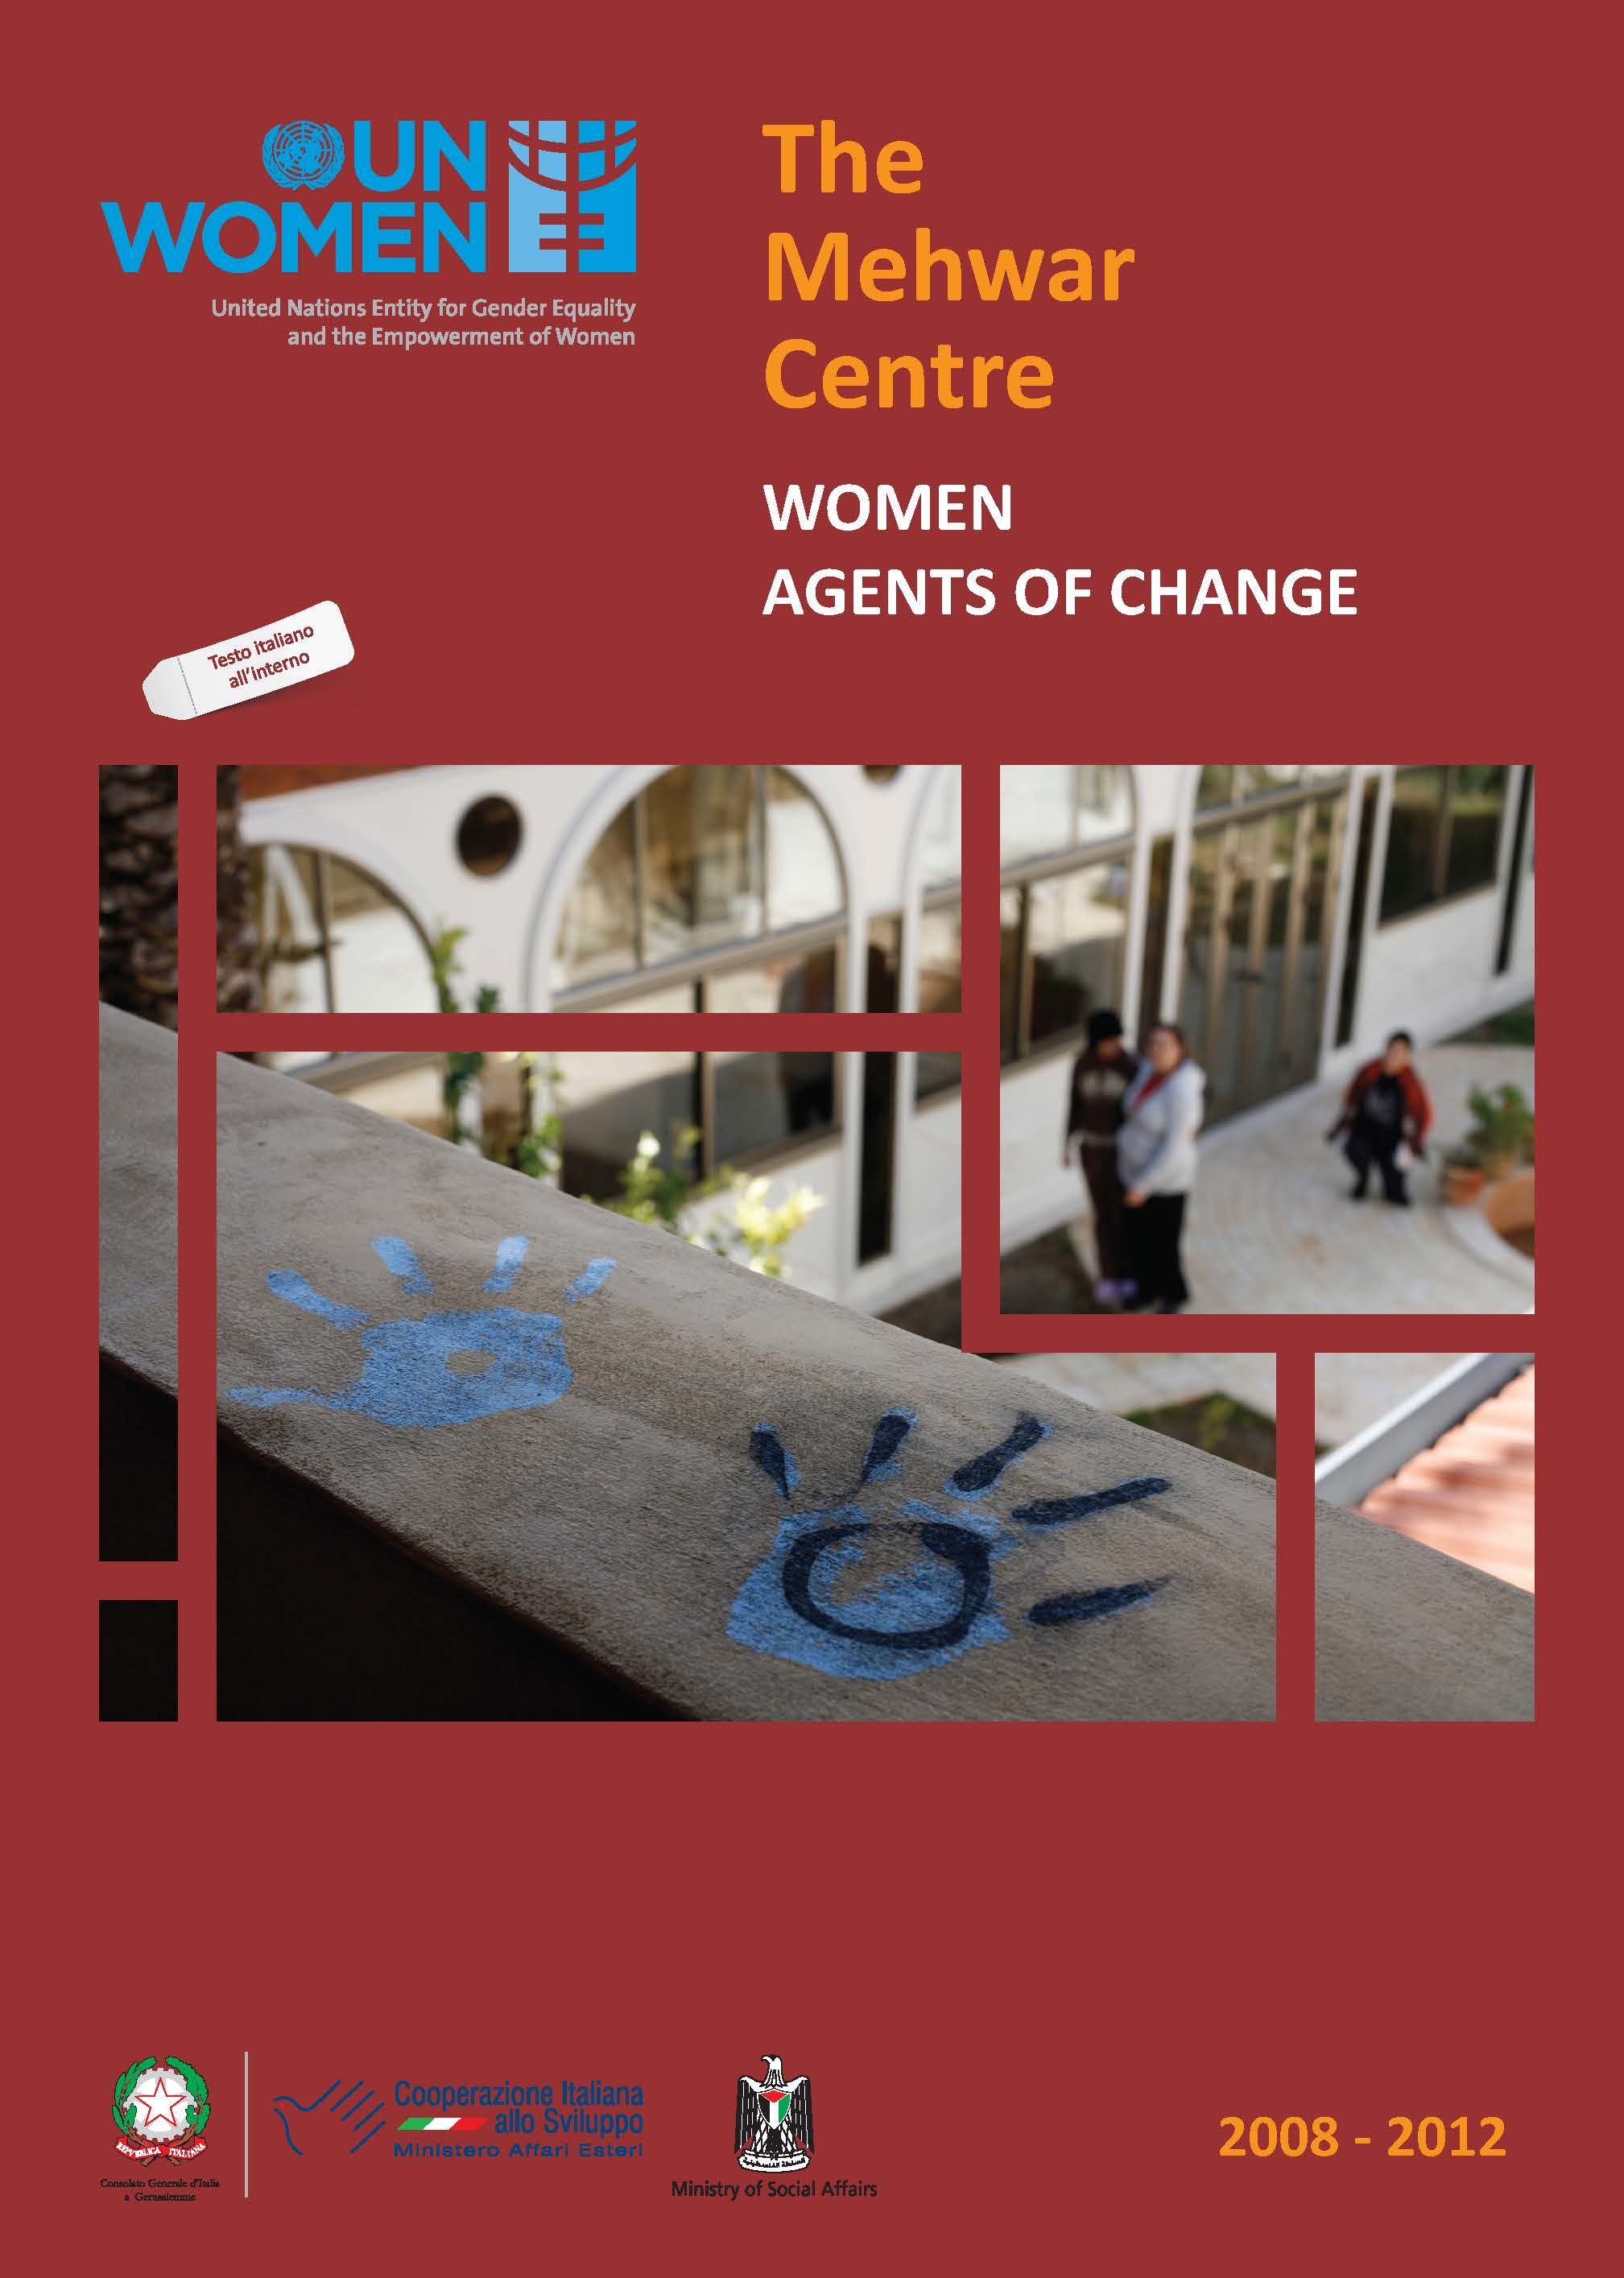 The Mehwar Centre: Women Agents of Change